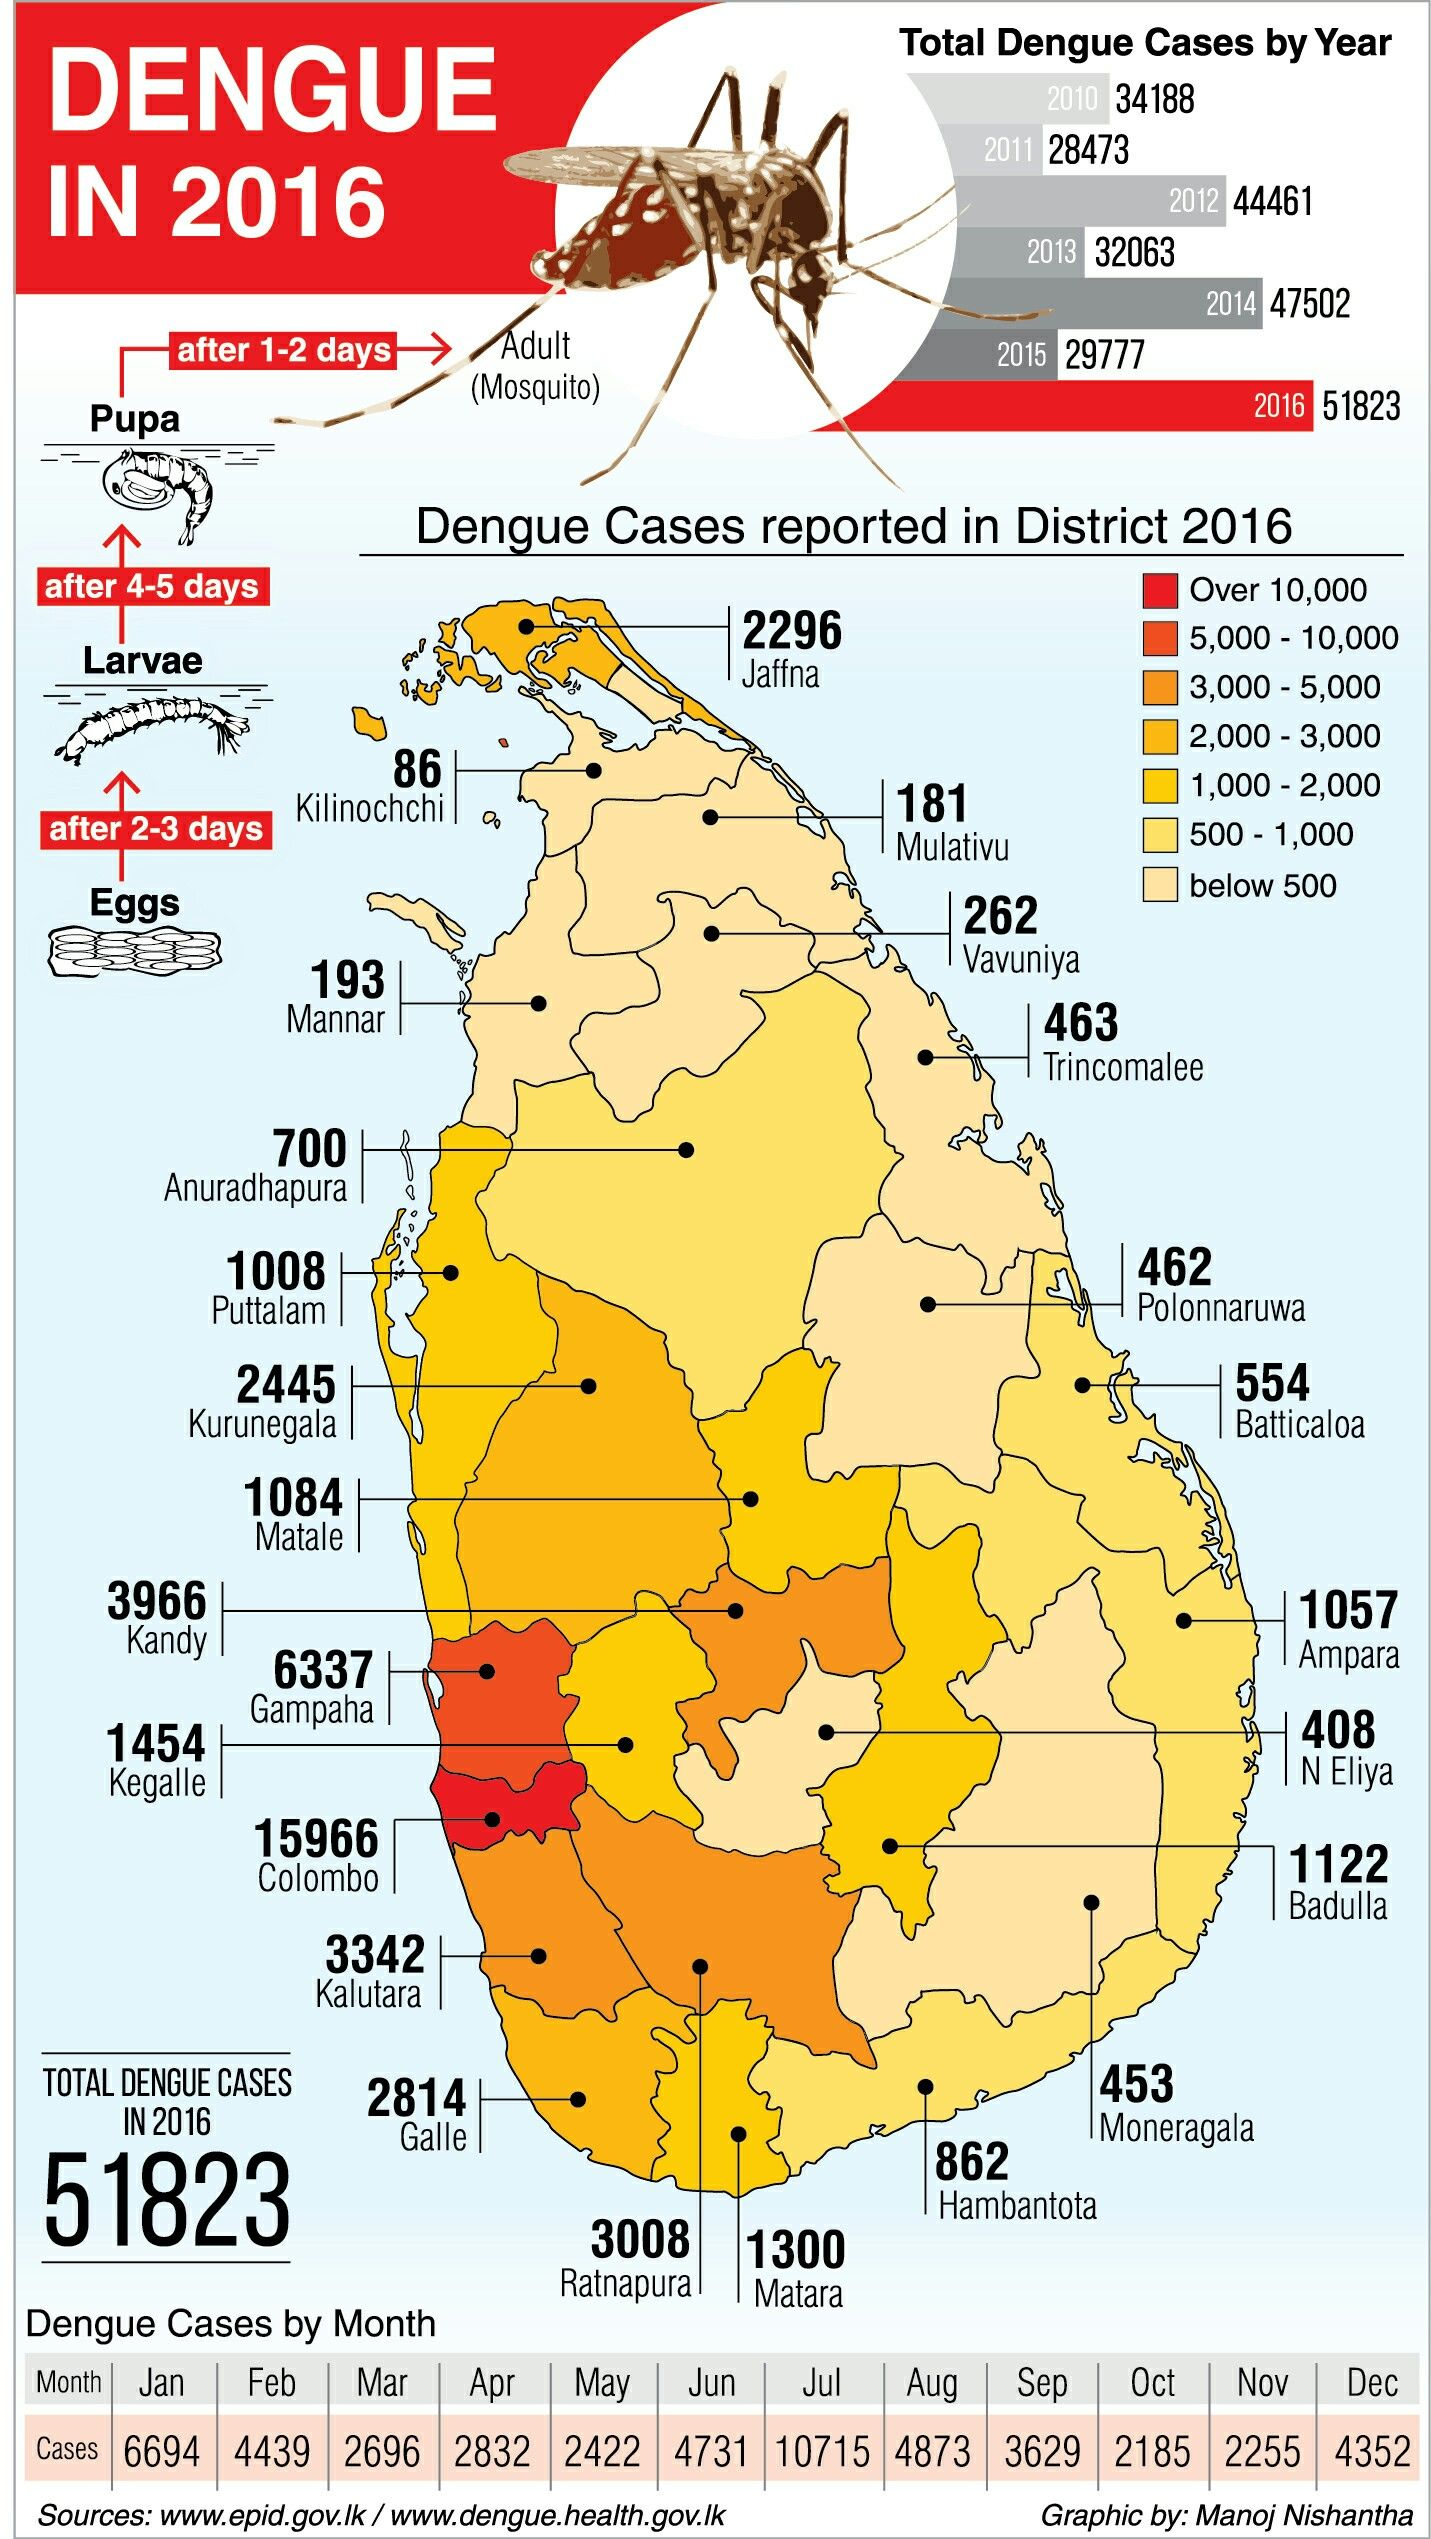 Dengue in 2016' present how spread Dengue as district level in Sri